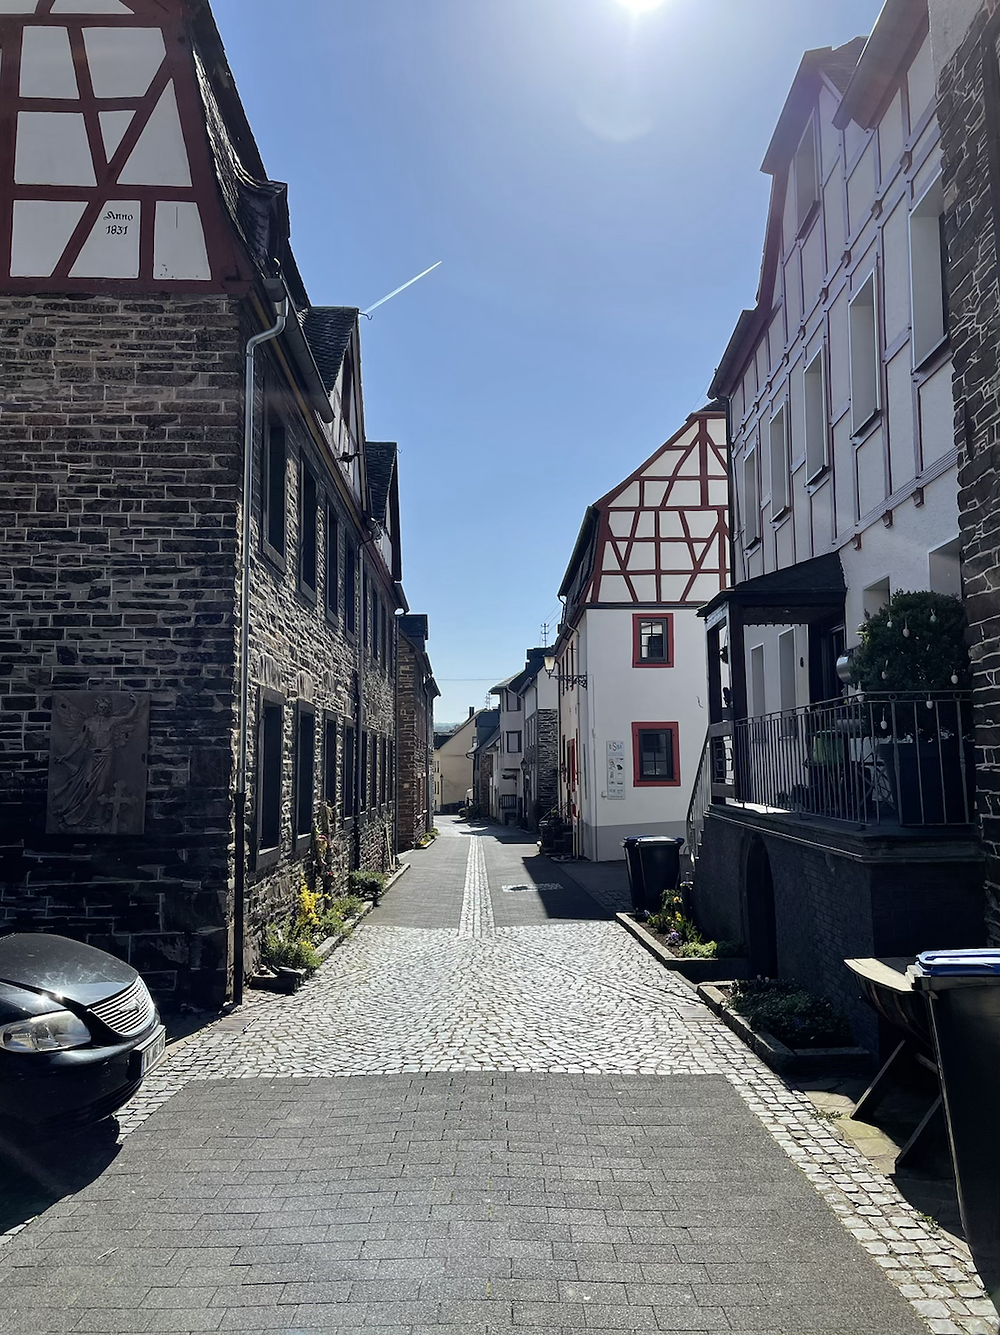 Bremm in the Moselle valley, Cochem-Zell